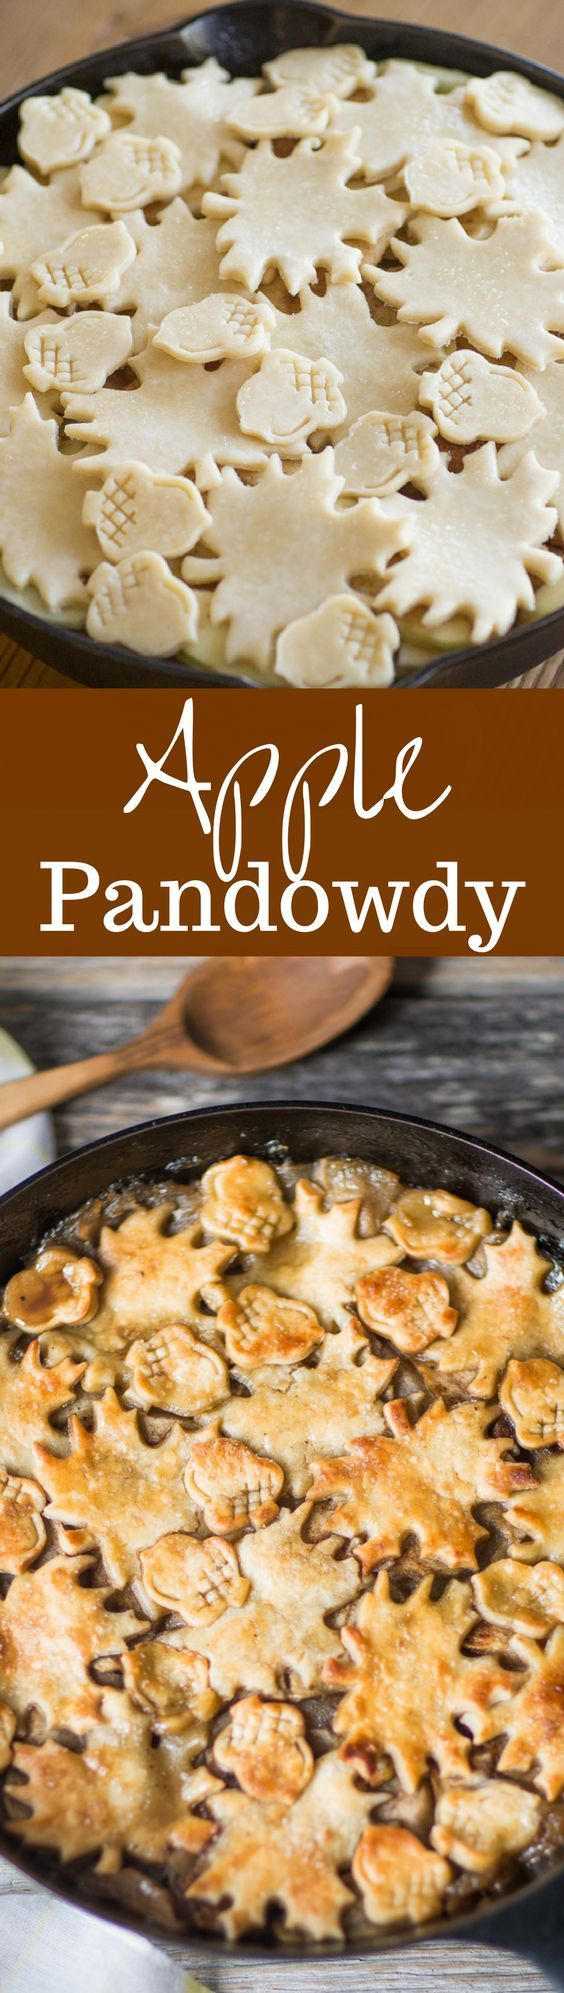 Apple Pandowdy (or Apple Pan Dowdy) - an old-fashioned skillet apple dessert with the crust pressed into the juices part-way through baking. http://www.savingdessert.com